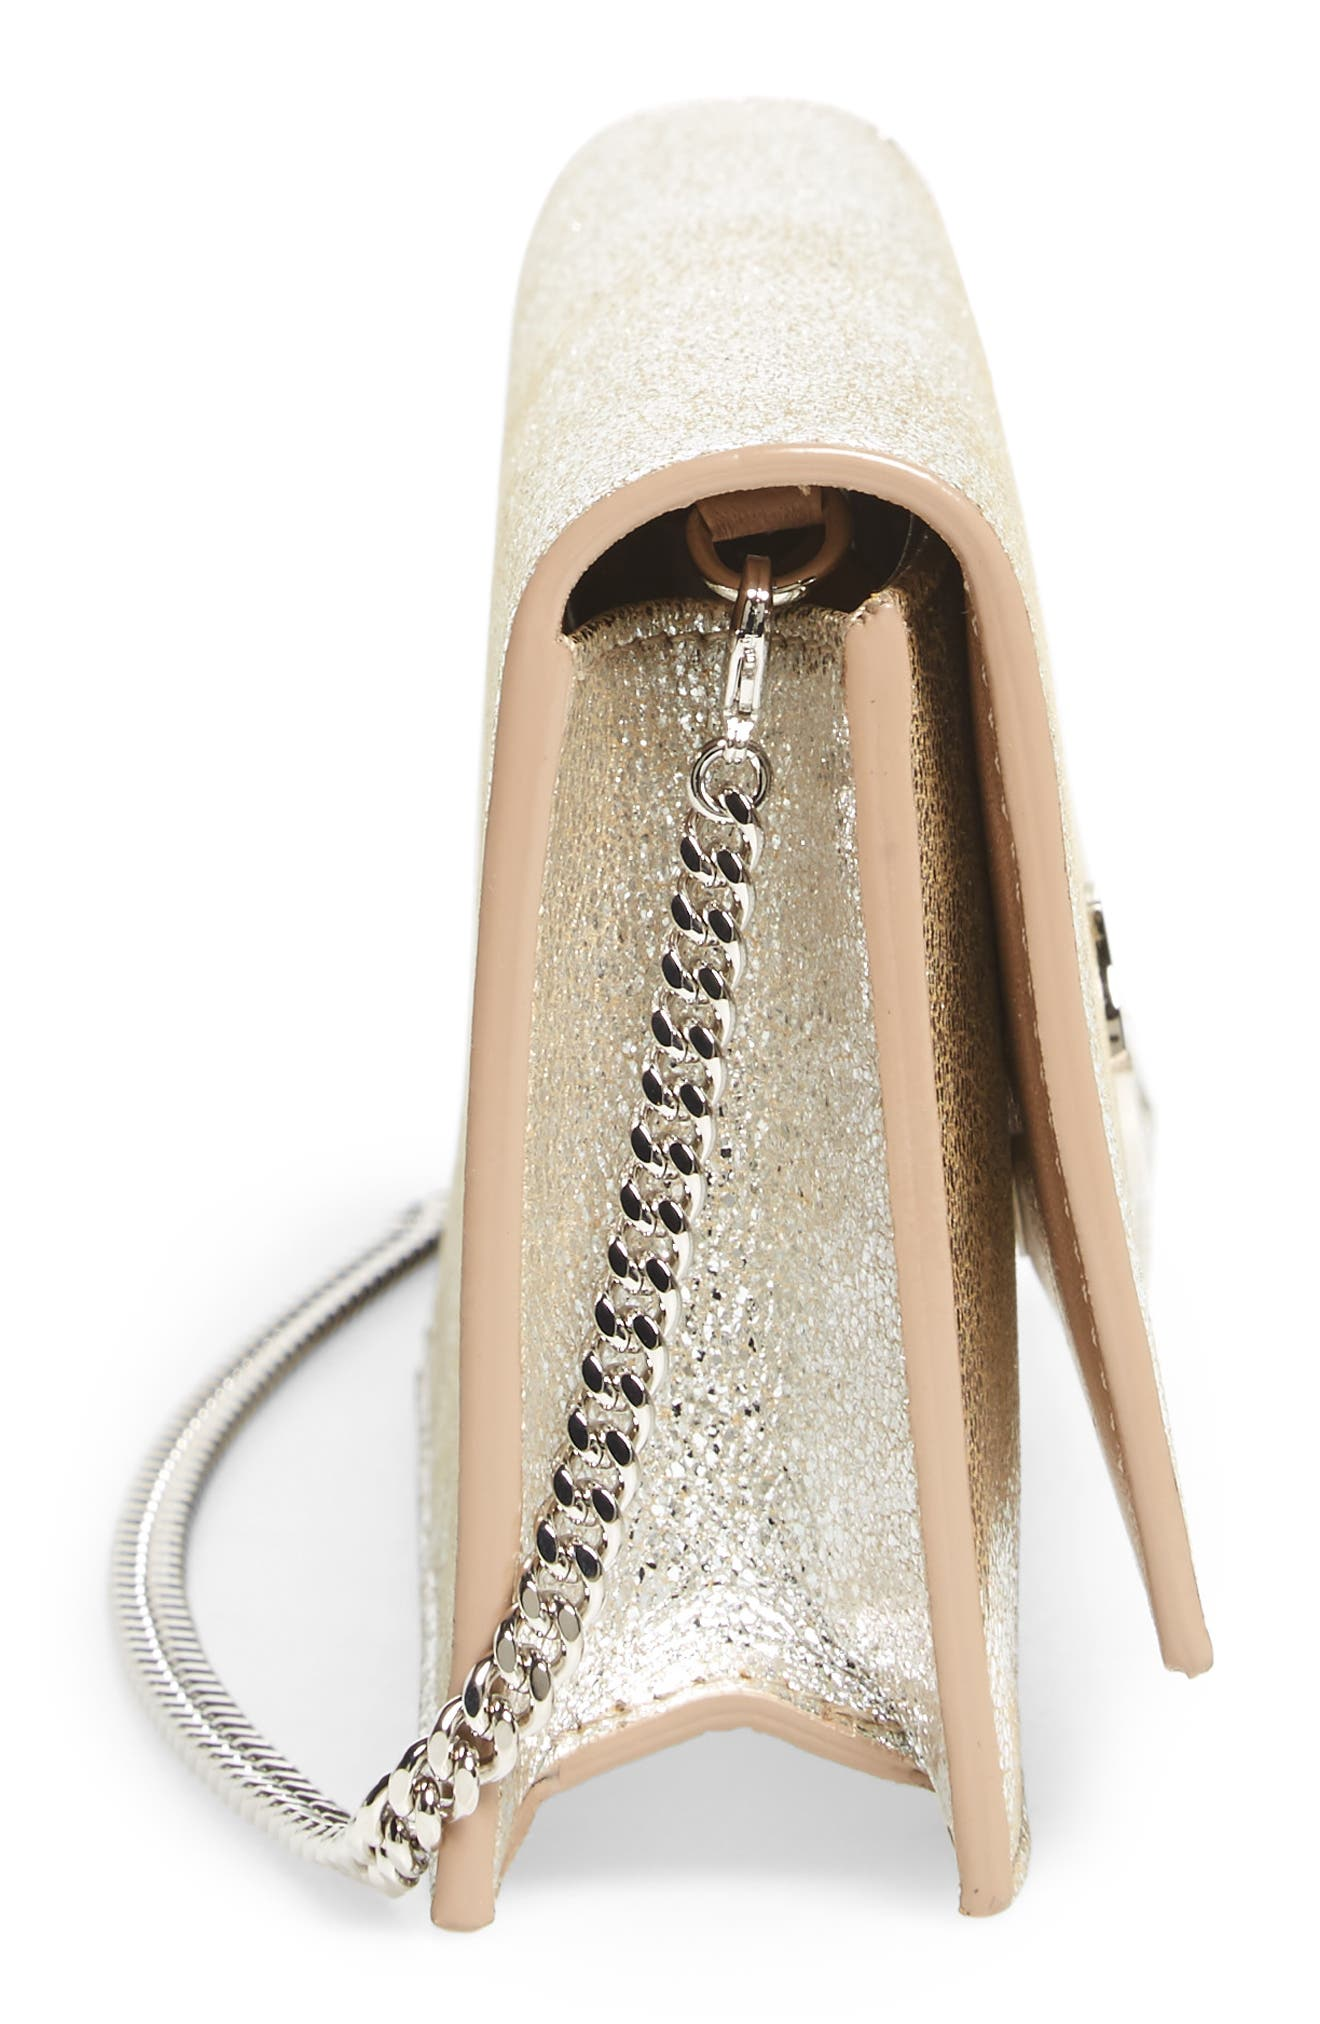 Fie Metallic Leather Clutch,                             Alternate thumbnail 4, color,                             Champagne